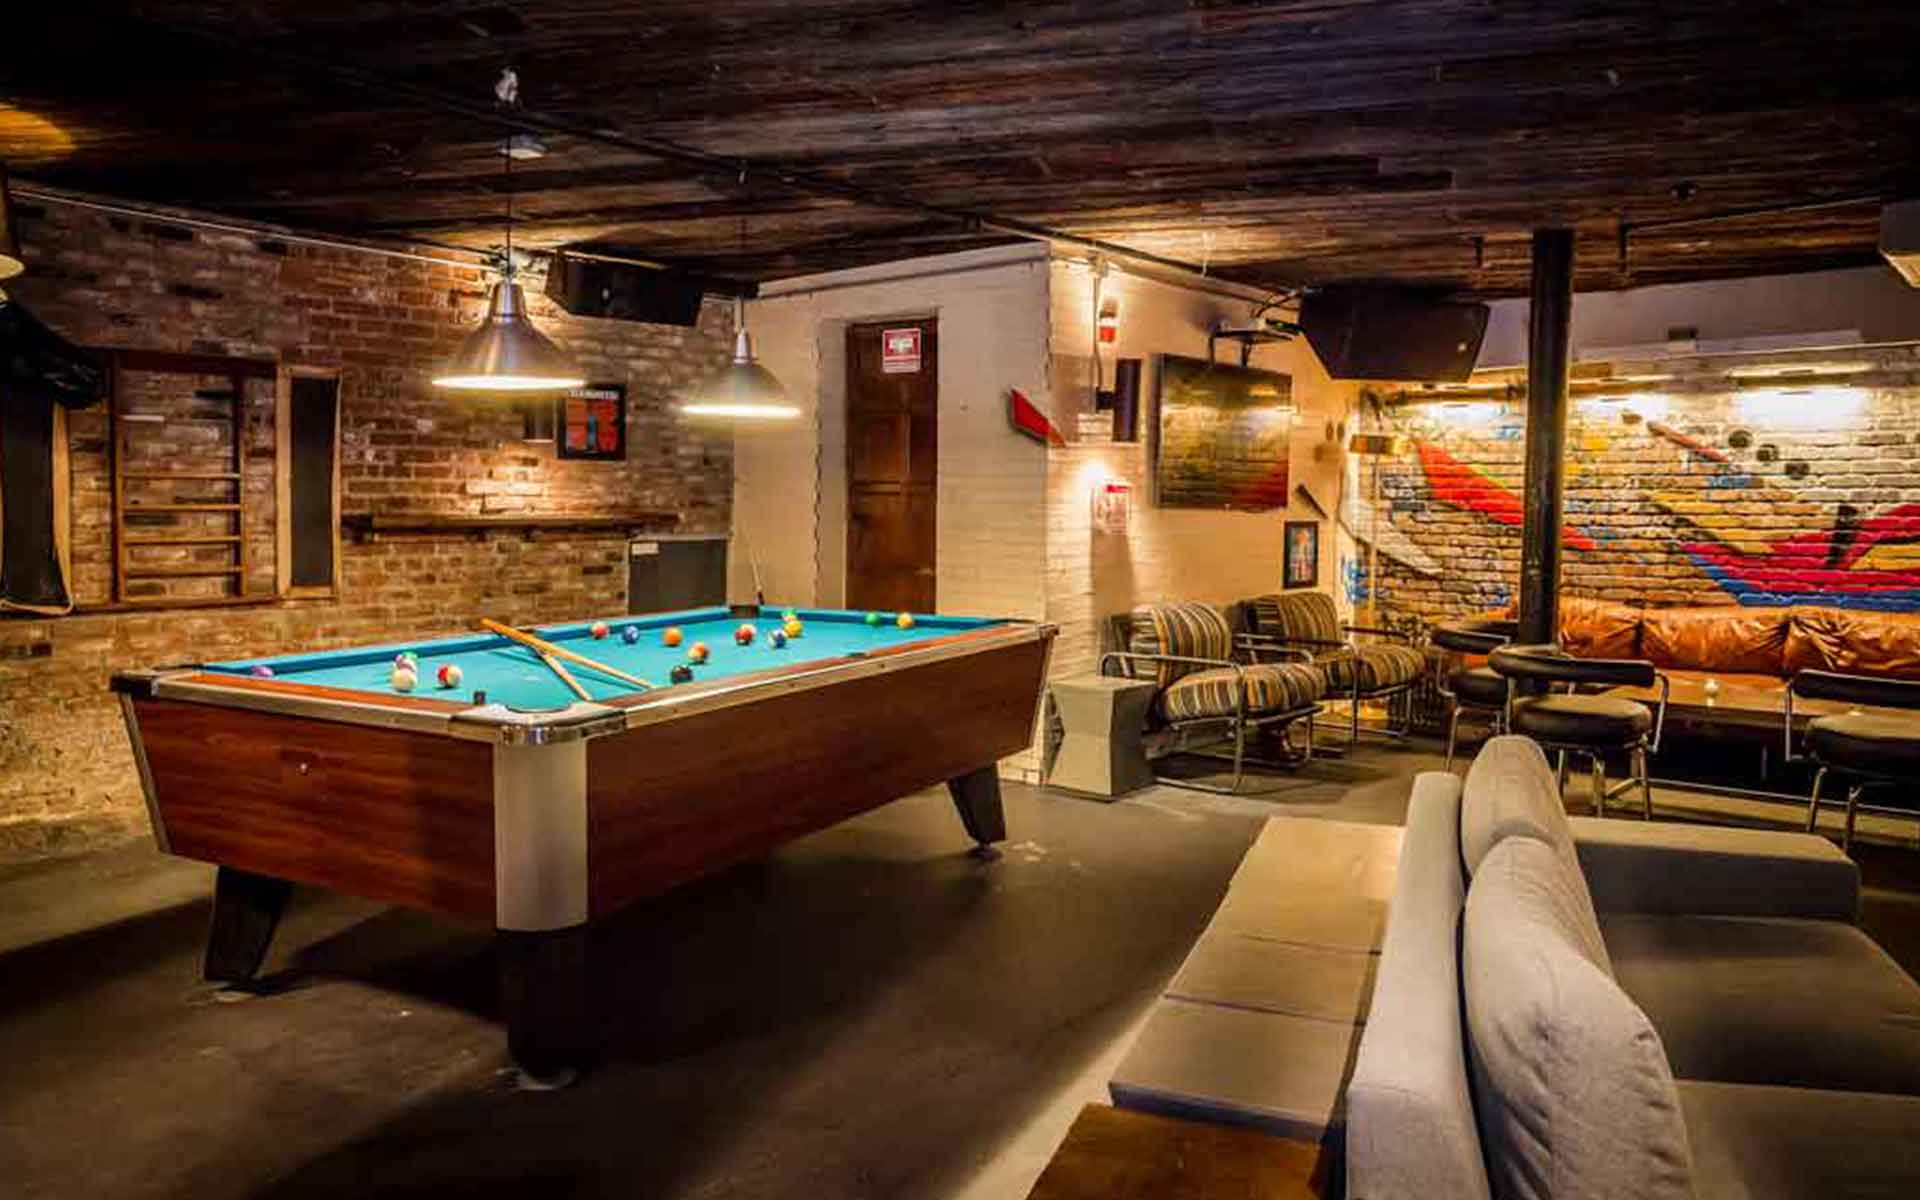 Photo #4 Pool Table Area at Troy Liquor Bar